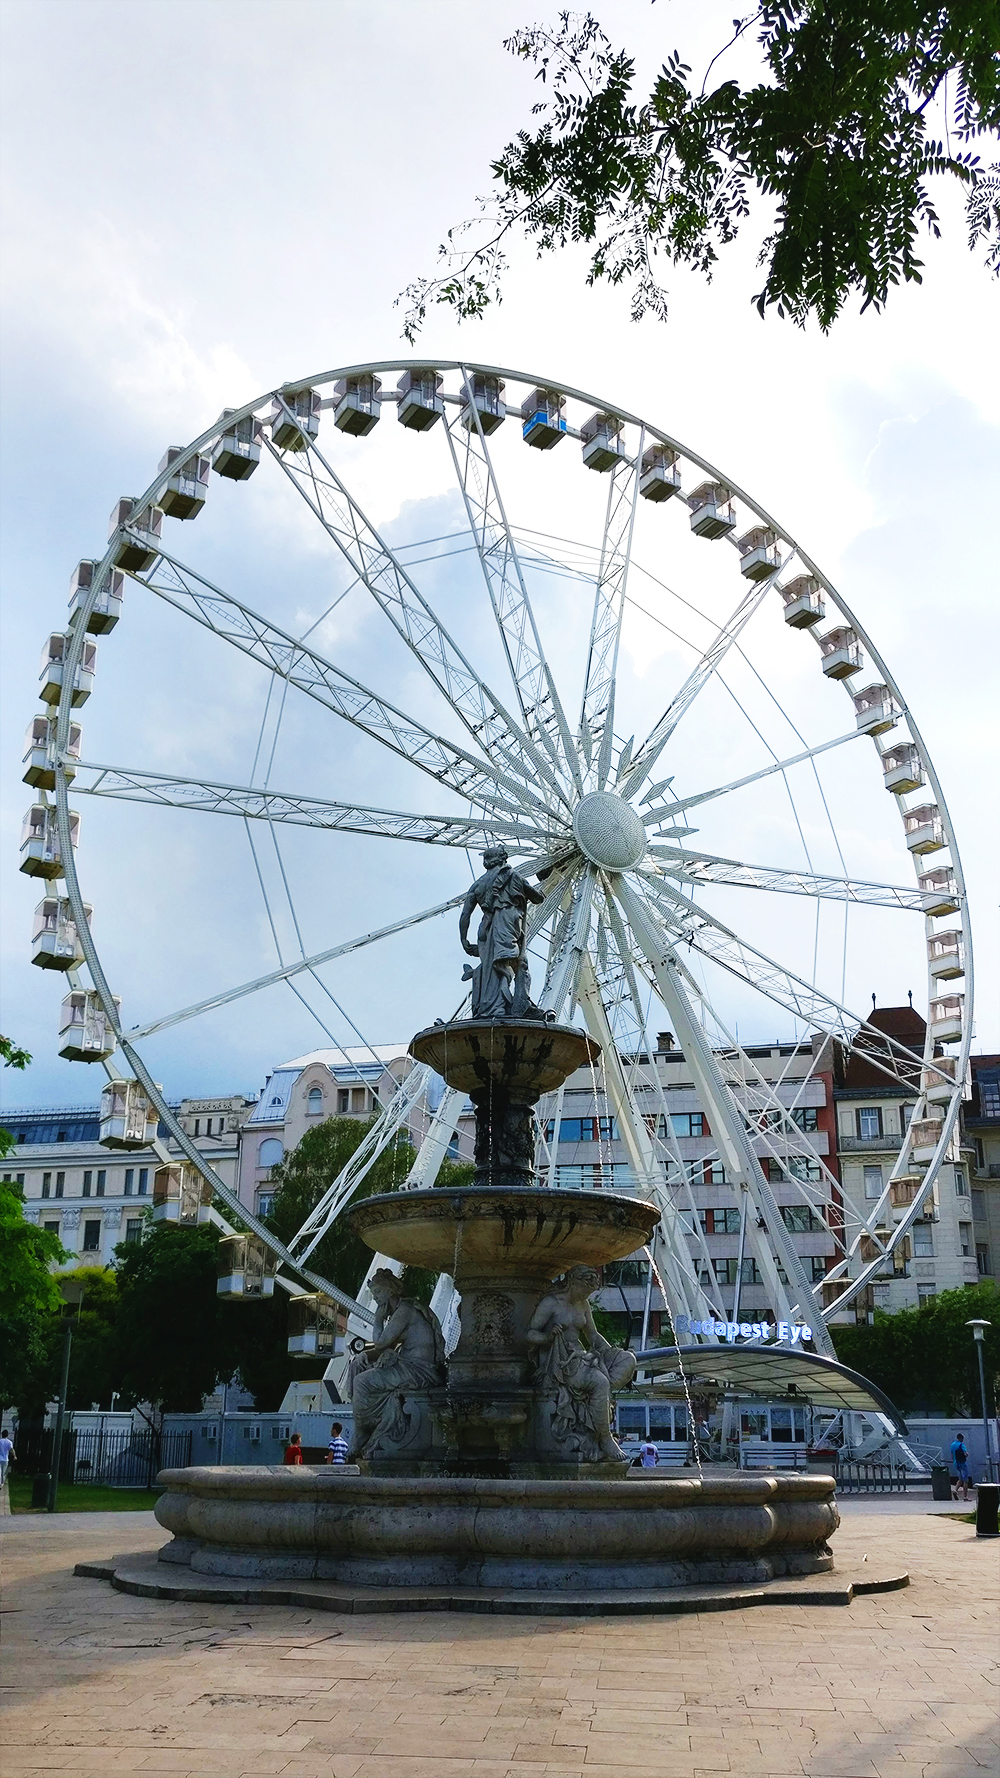 Budapest Eye - Top 5 viewpoints in Budapest Hungary, recommended by a local | Aliz's Wonderland